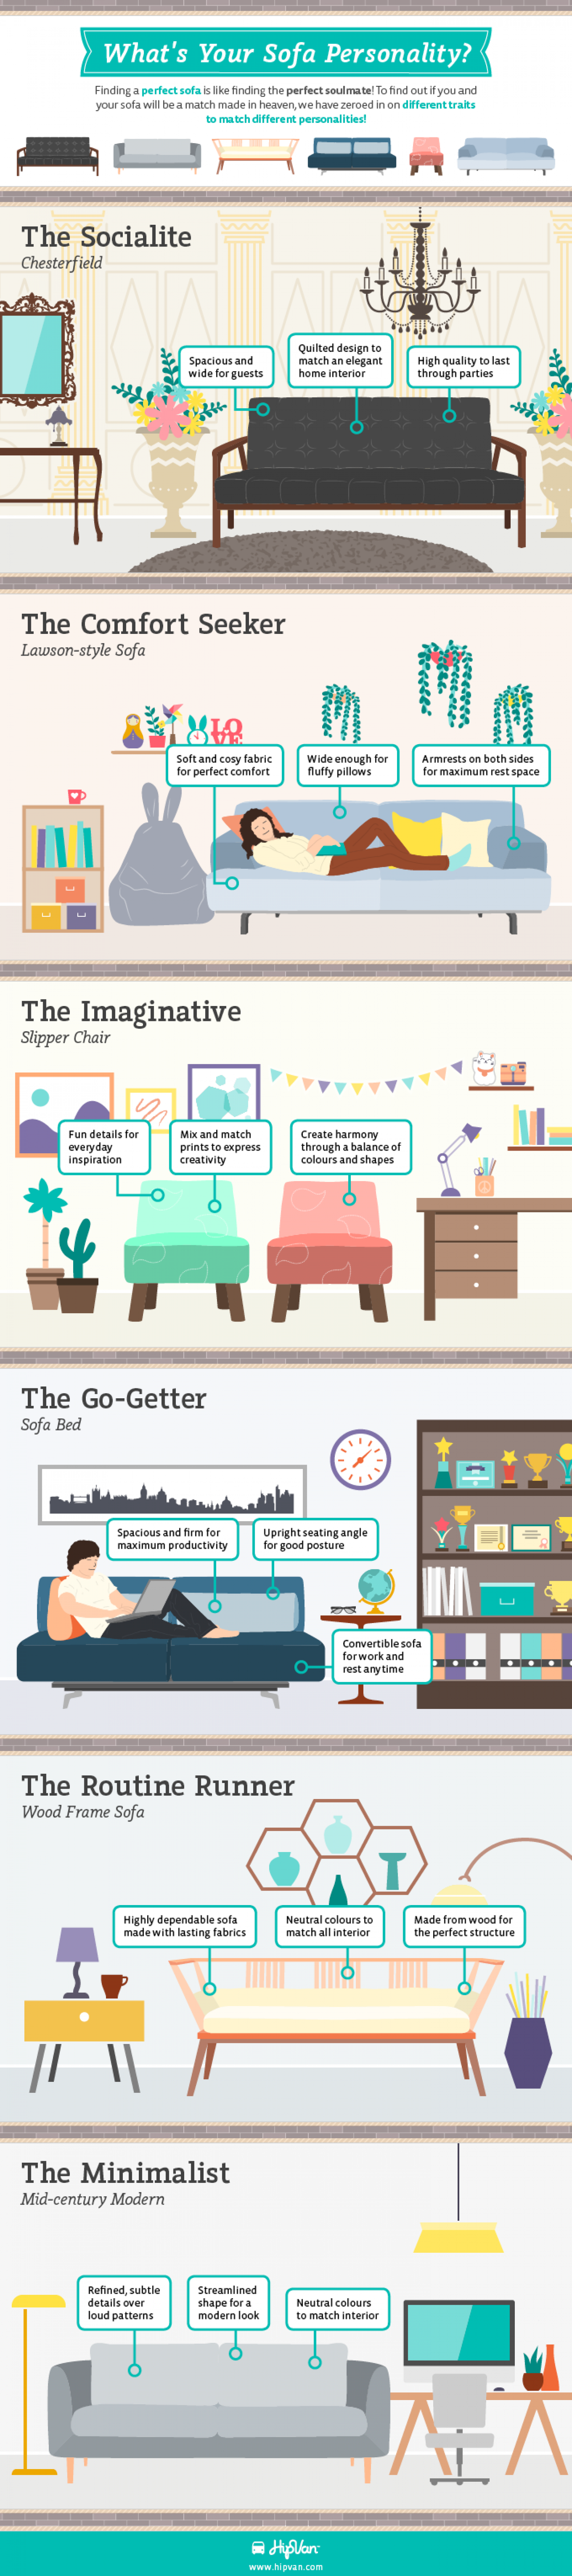 What is Your Sofa Personality? Infographic